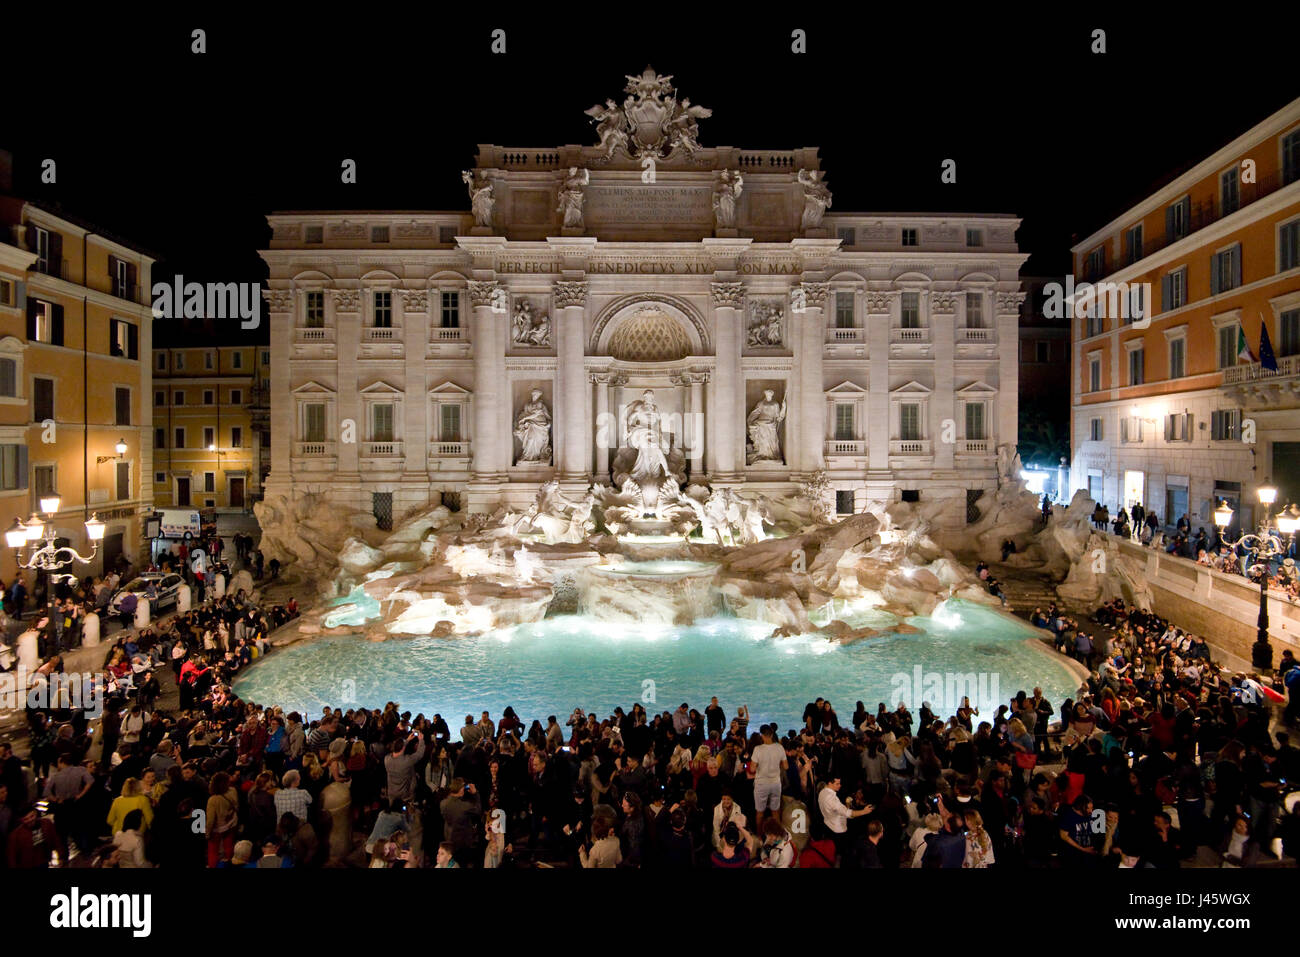 """An aerial view of The Trevi Fountain """"Fontana di Trevi"""" in Rome with crowds of tourists and visitors at night. Stock Photo"""